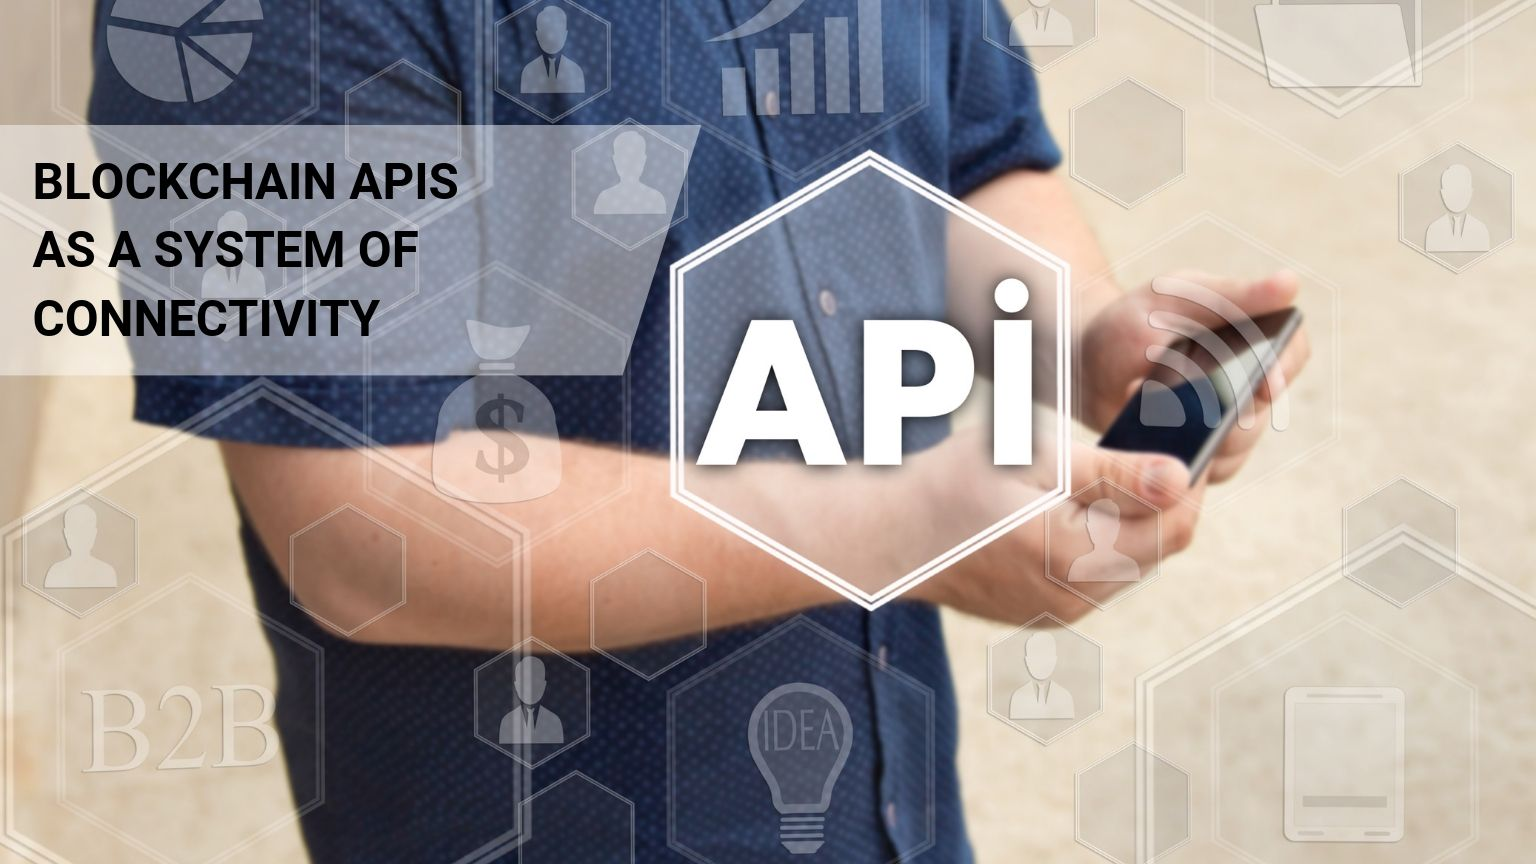 Blockchain API as a System of Connectivity